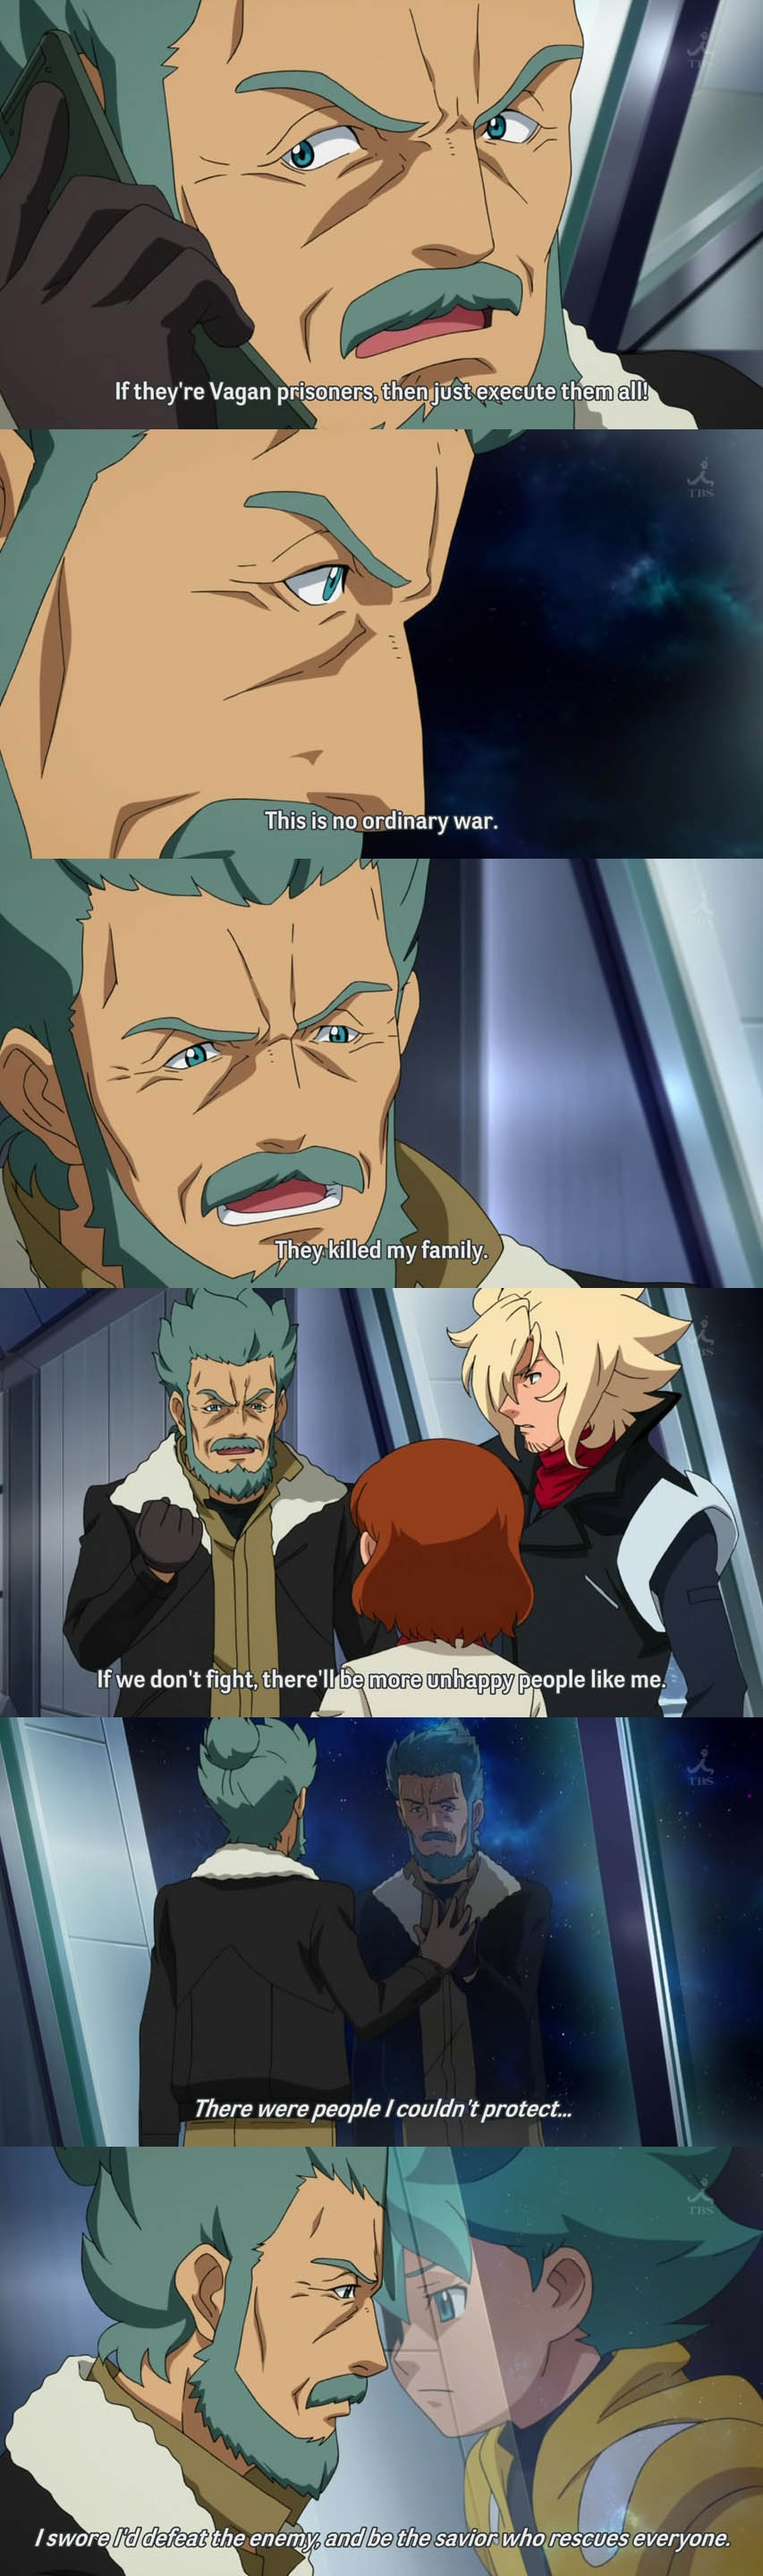 cleverness anime than alia series better first looks more china aged have much hated orphans iron-blooded discussion until reminded point which gundam